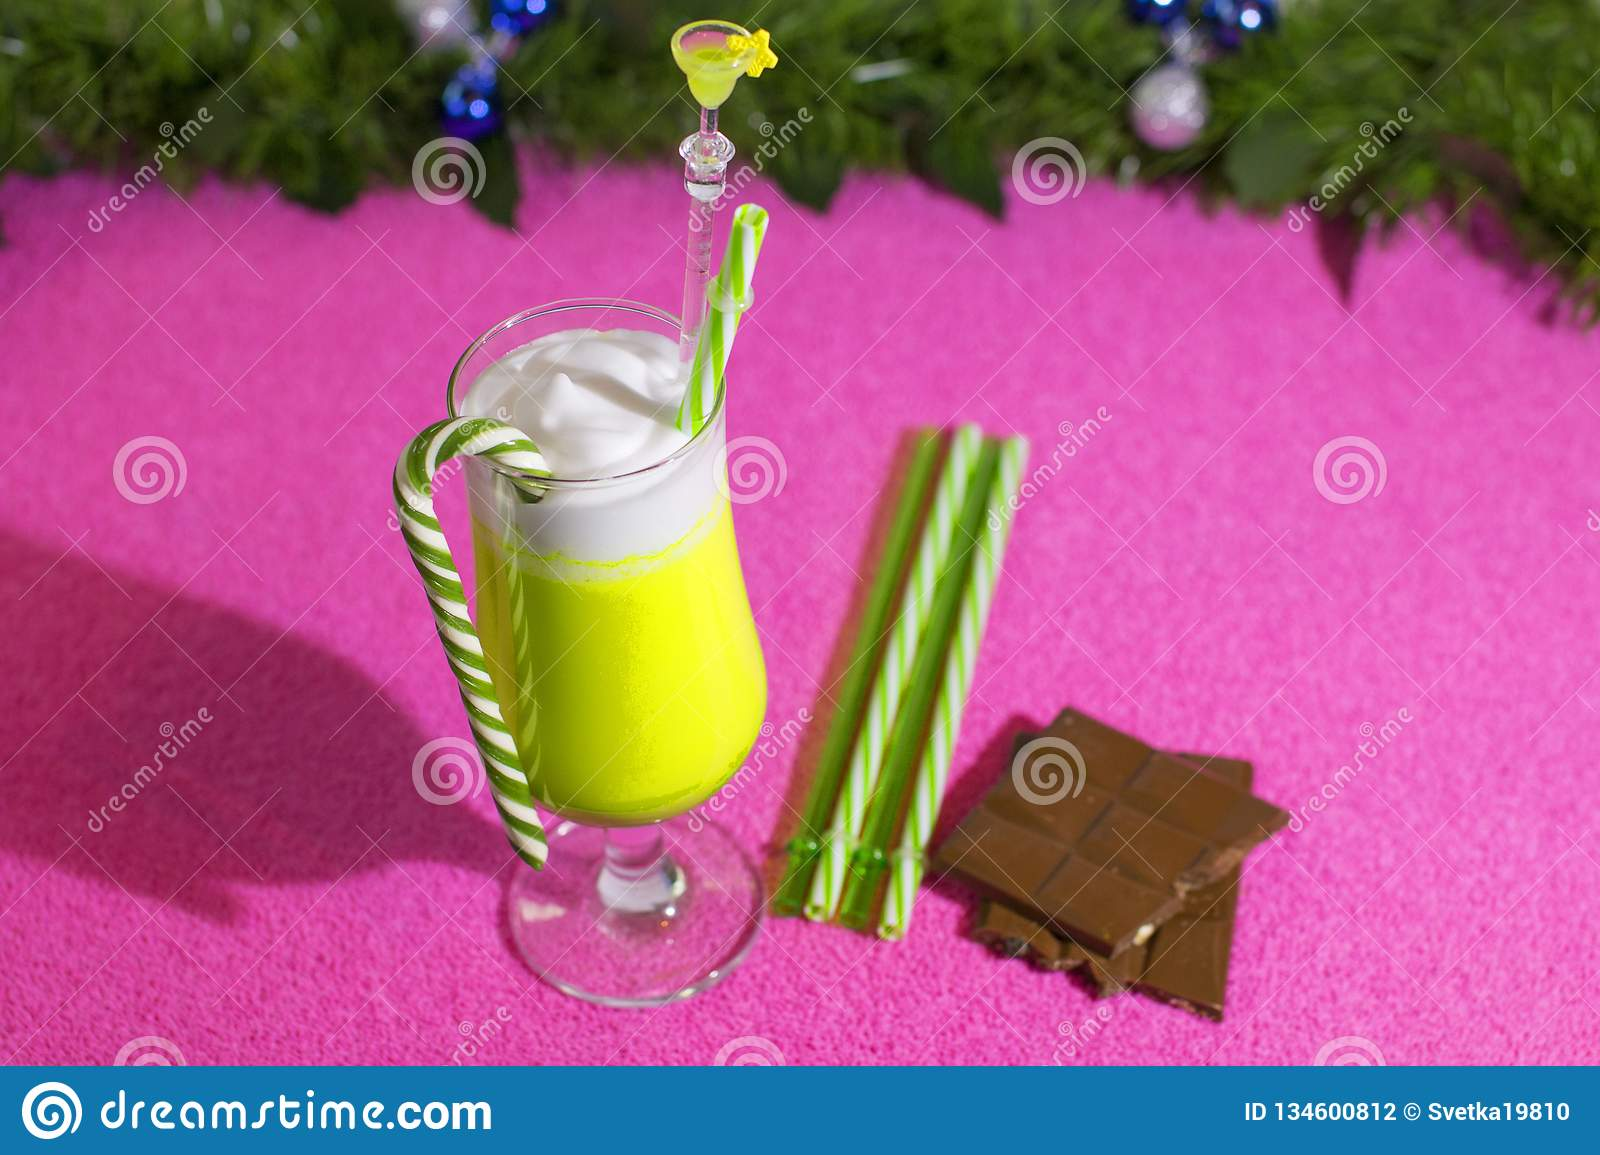 New Year Non-alcoholic And Alcoholic Drinks For Children ...